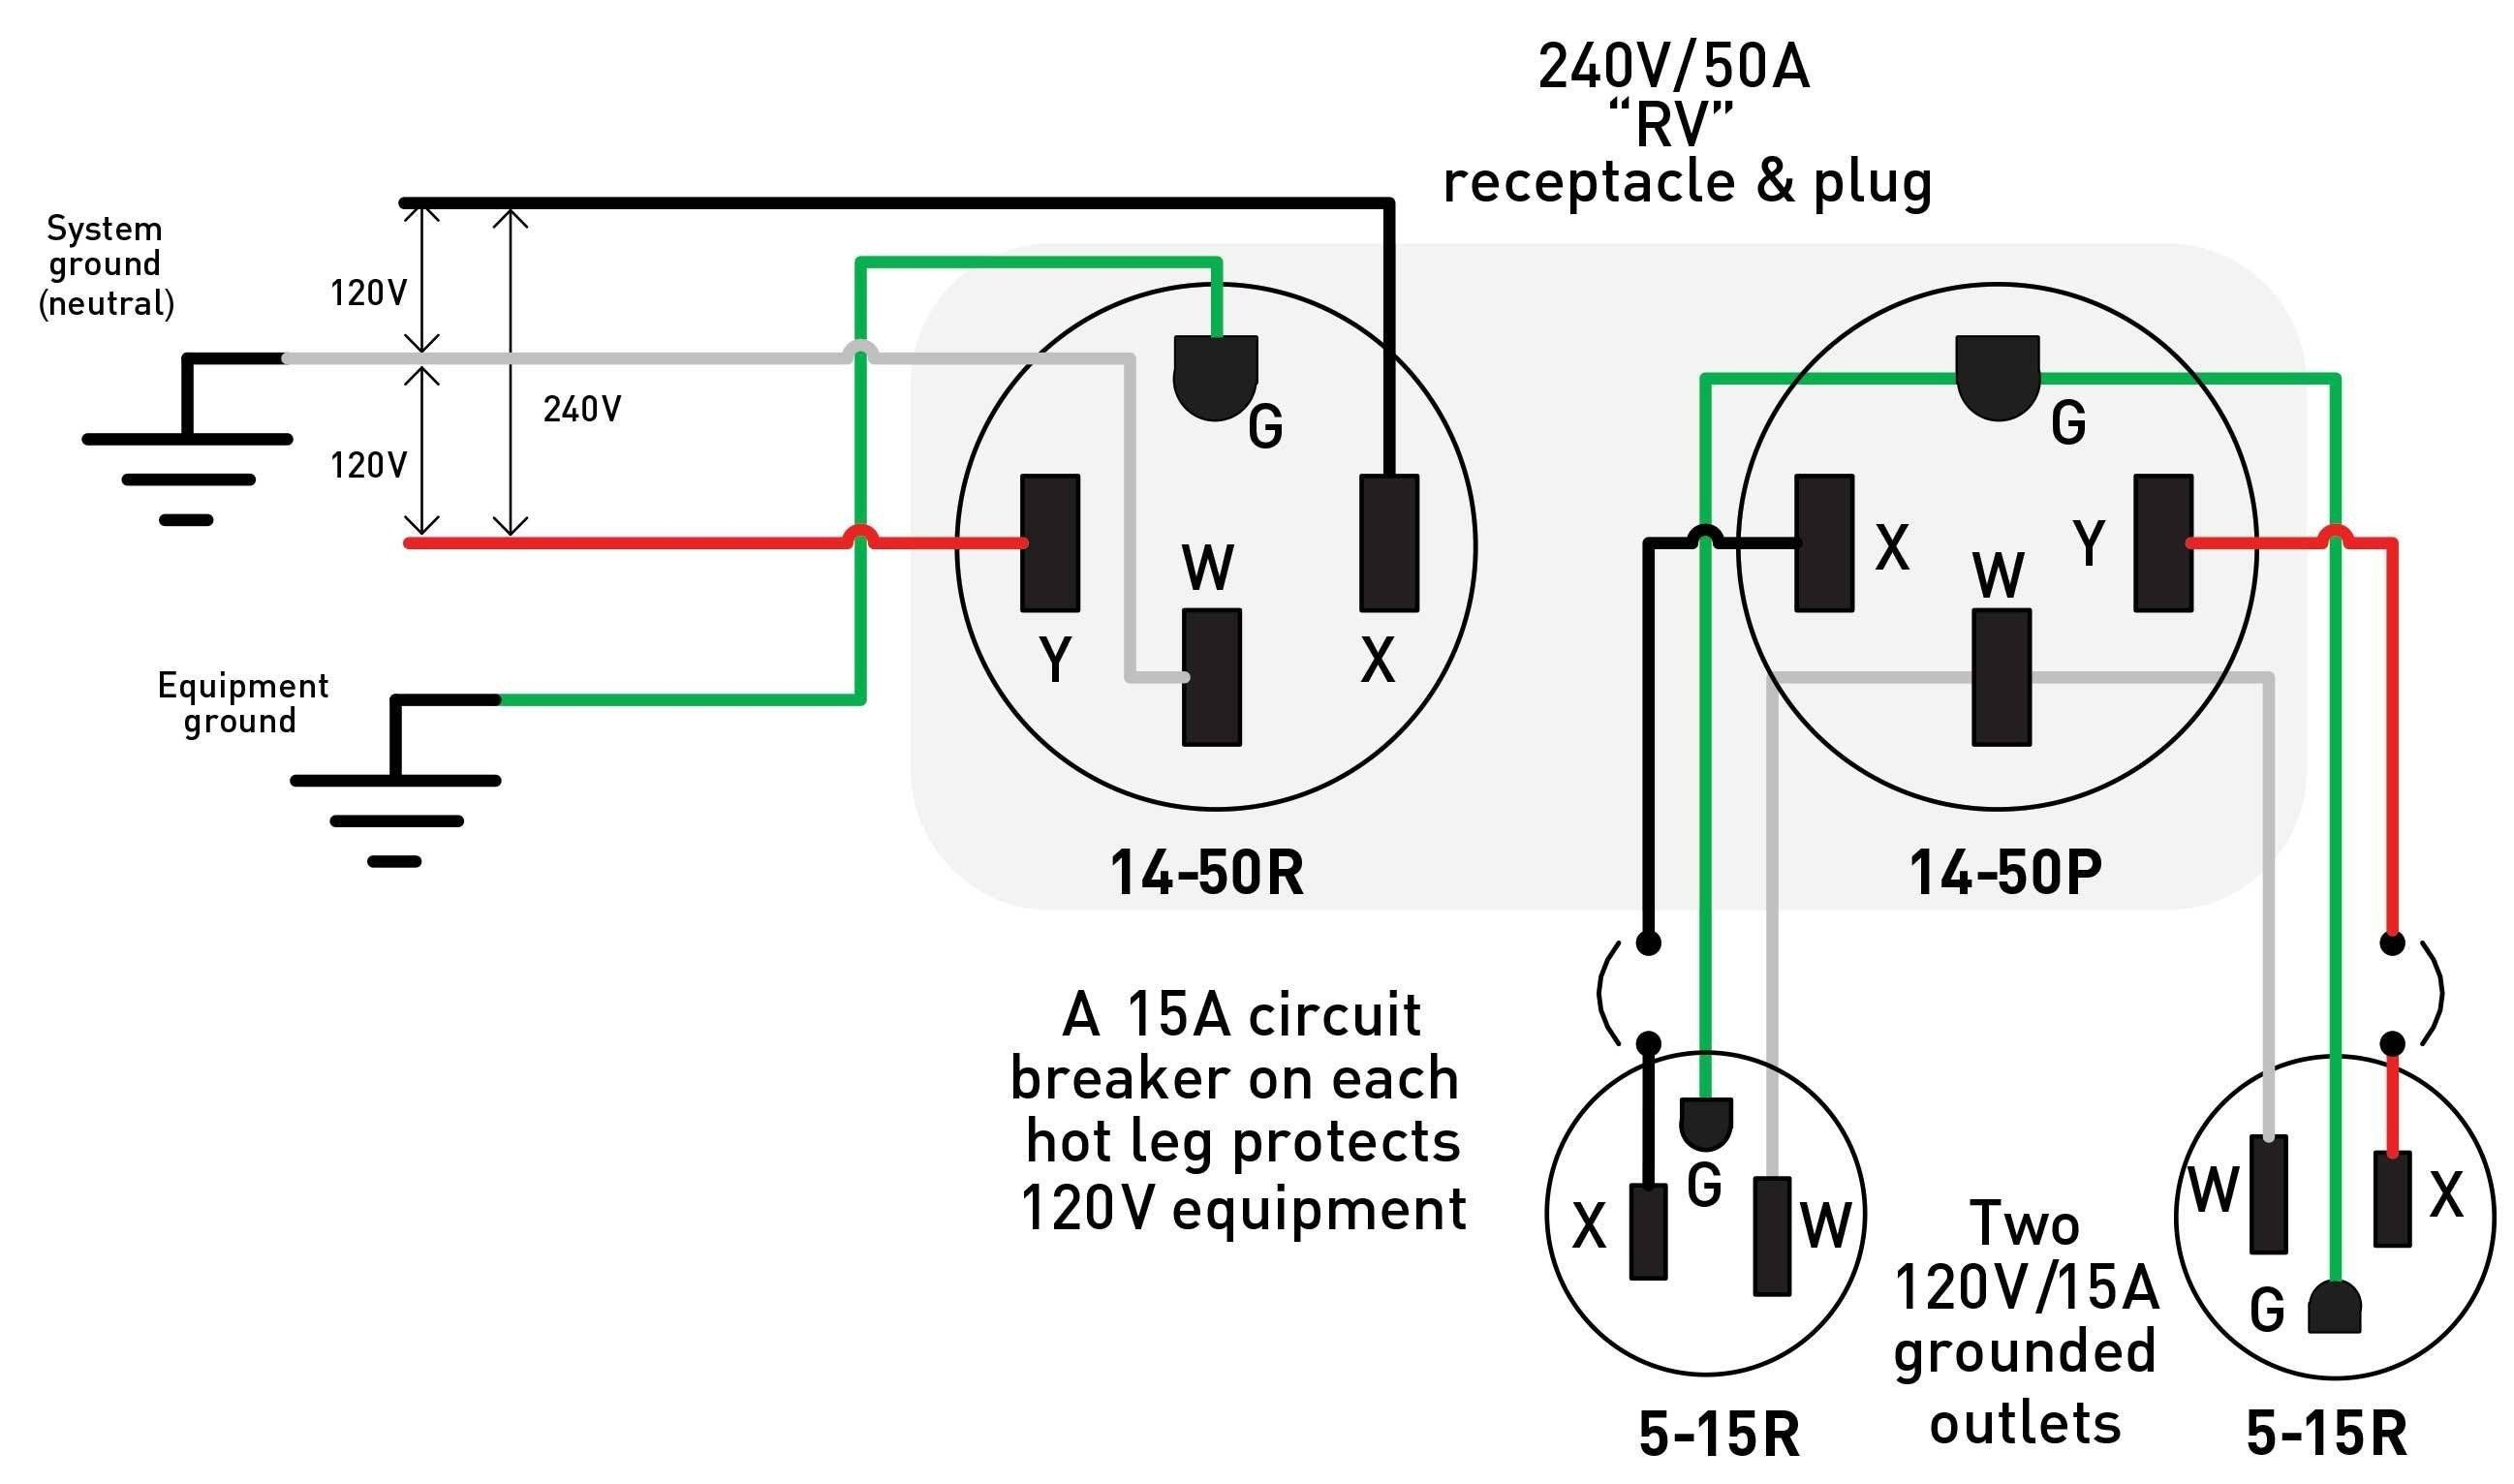 Wiring Diagram For Electrical Receptacle Copy 30 And Plug